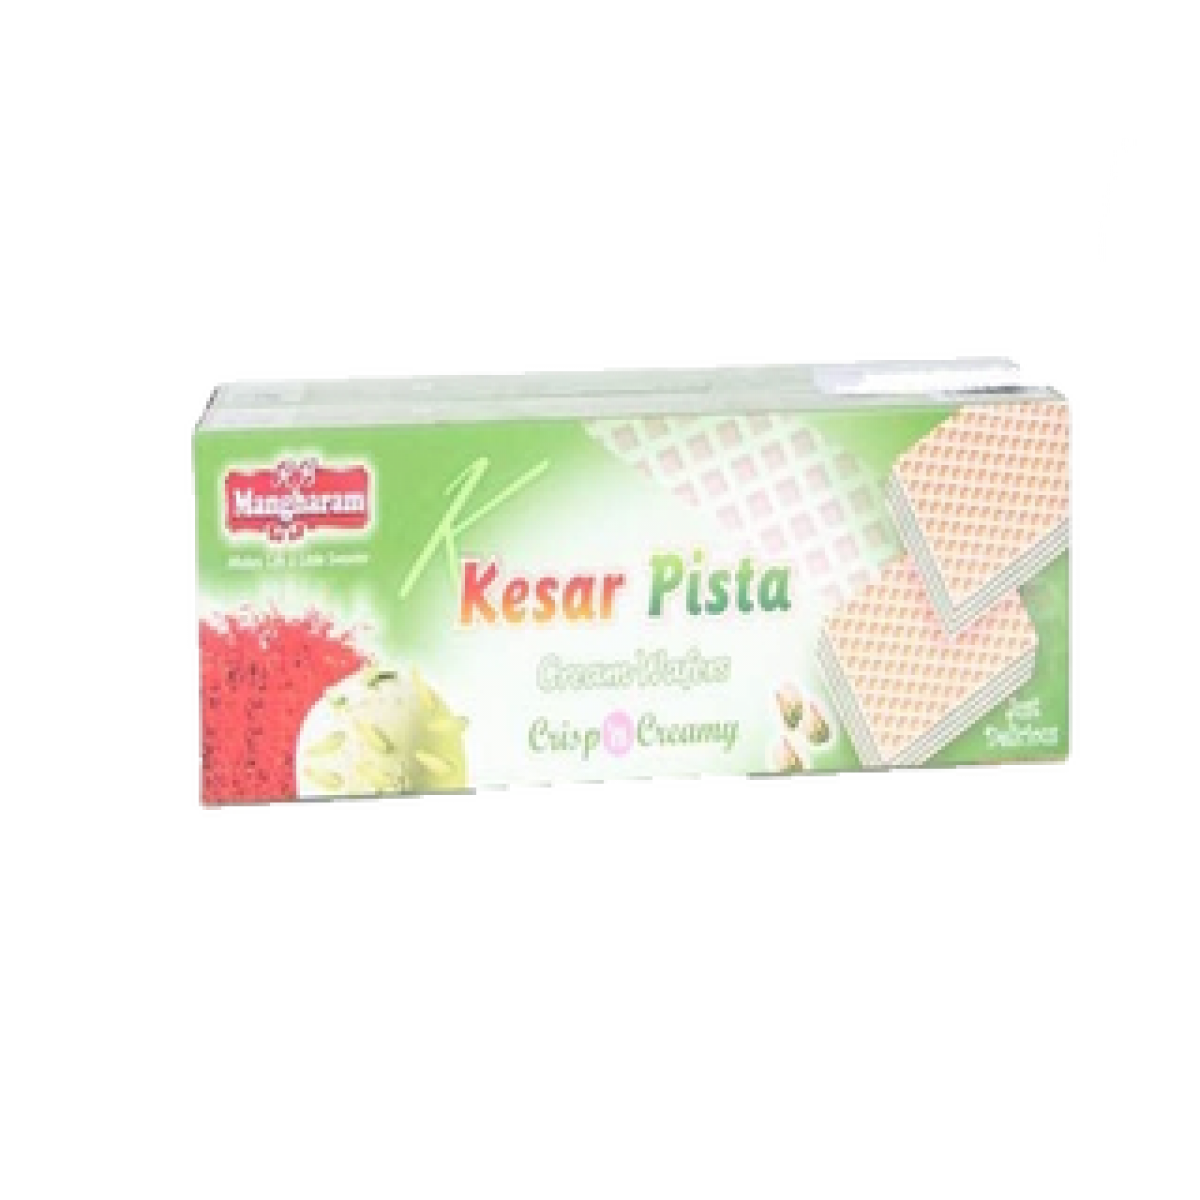 Mangharam Cream Wafers Kesar Pista